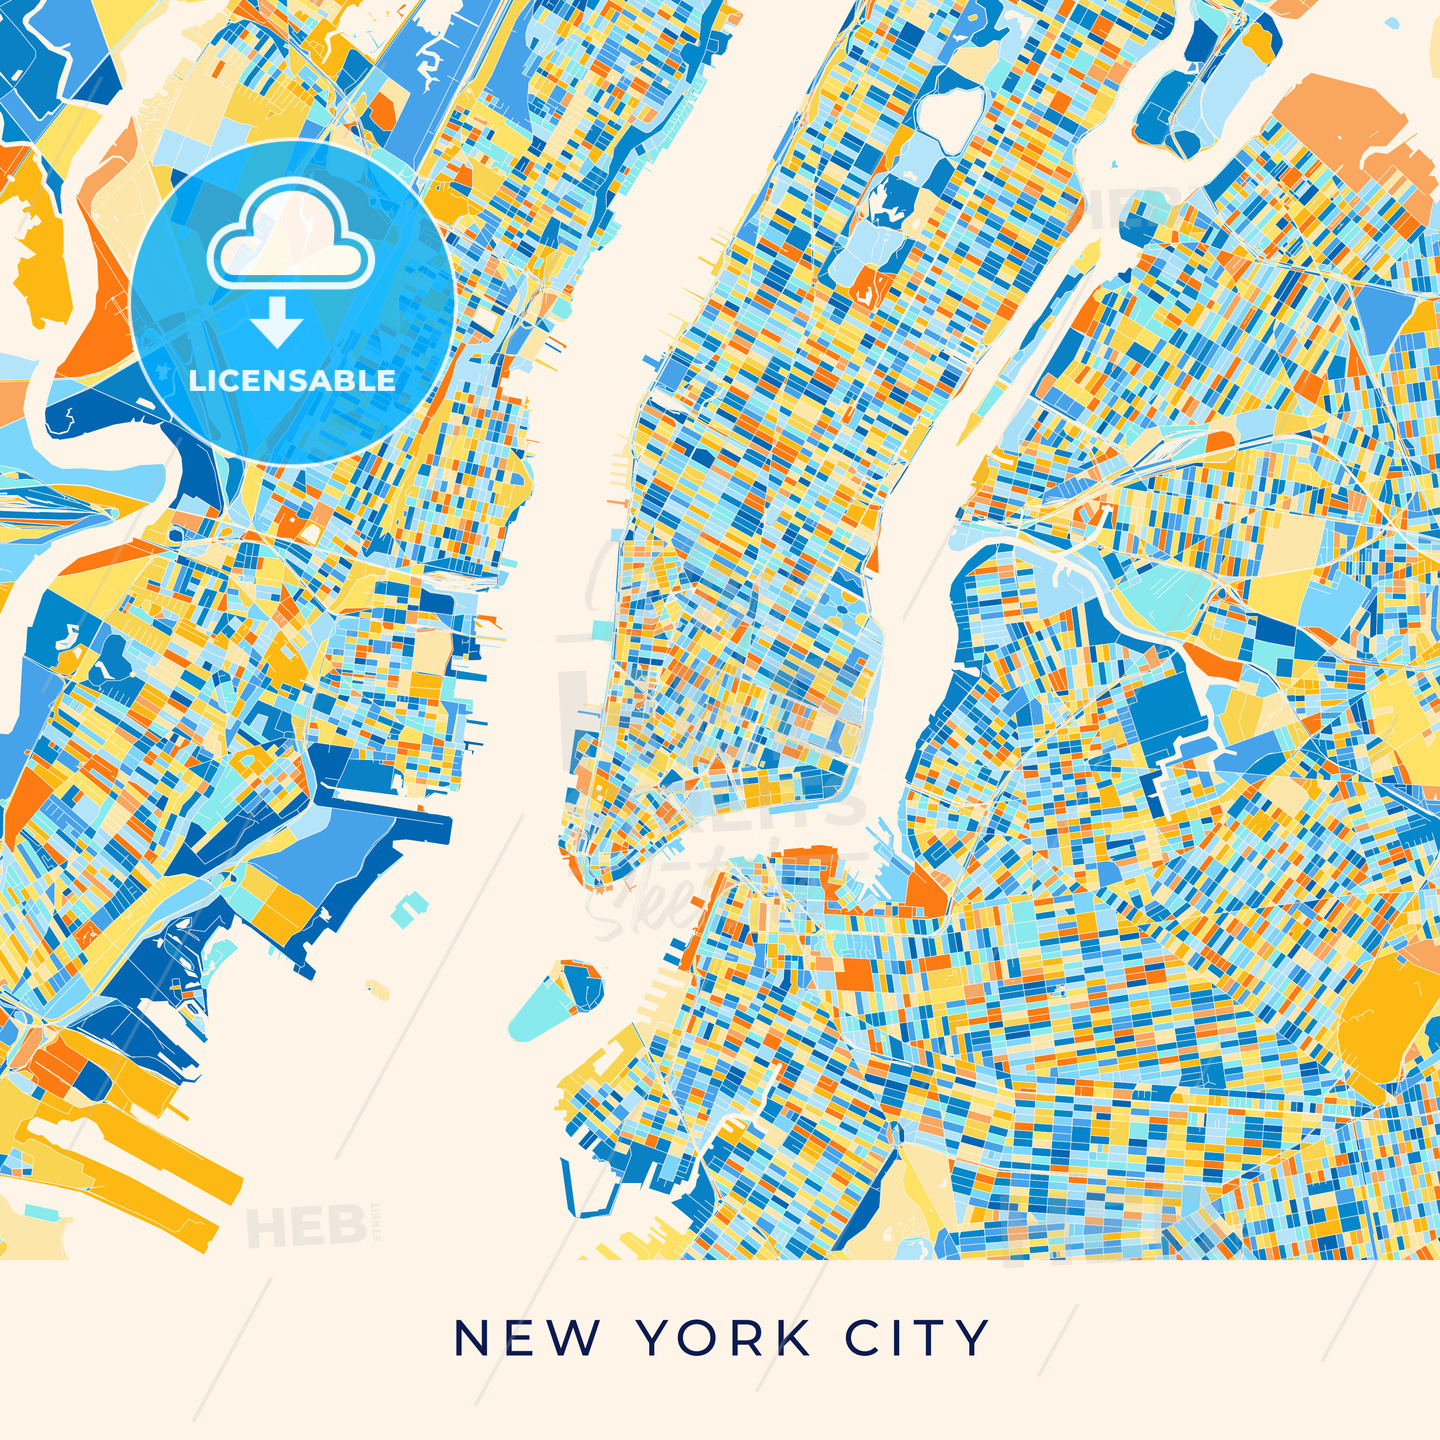 New York City colorful map poster template City Of New York Map on las vegas, map of honolulu, map of the northeast, empire state building, map of new york university, times square, map of las vegas, map of san diego, map of los angeles, statue of liberty, map of times square, map of brooklyn, map of manhattan, map of staten island, map of toronto, map of queens ny, map of cleveland ohio, map of 50 states, map of new york state, map of bronx, los angeles, map of world trade center, san francisco, central park, united states of america, new jersey, map of pennsylvania, map of washington dc, map of nevada,